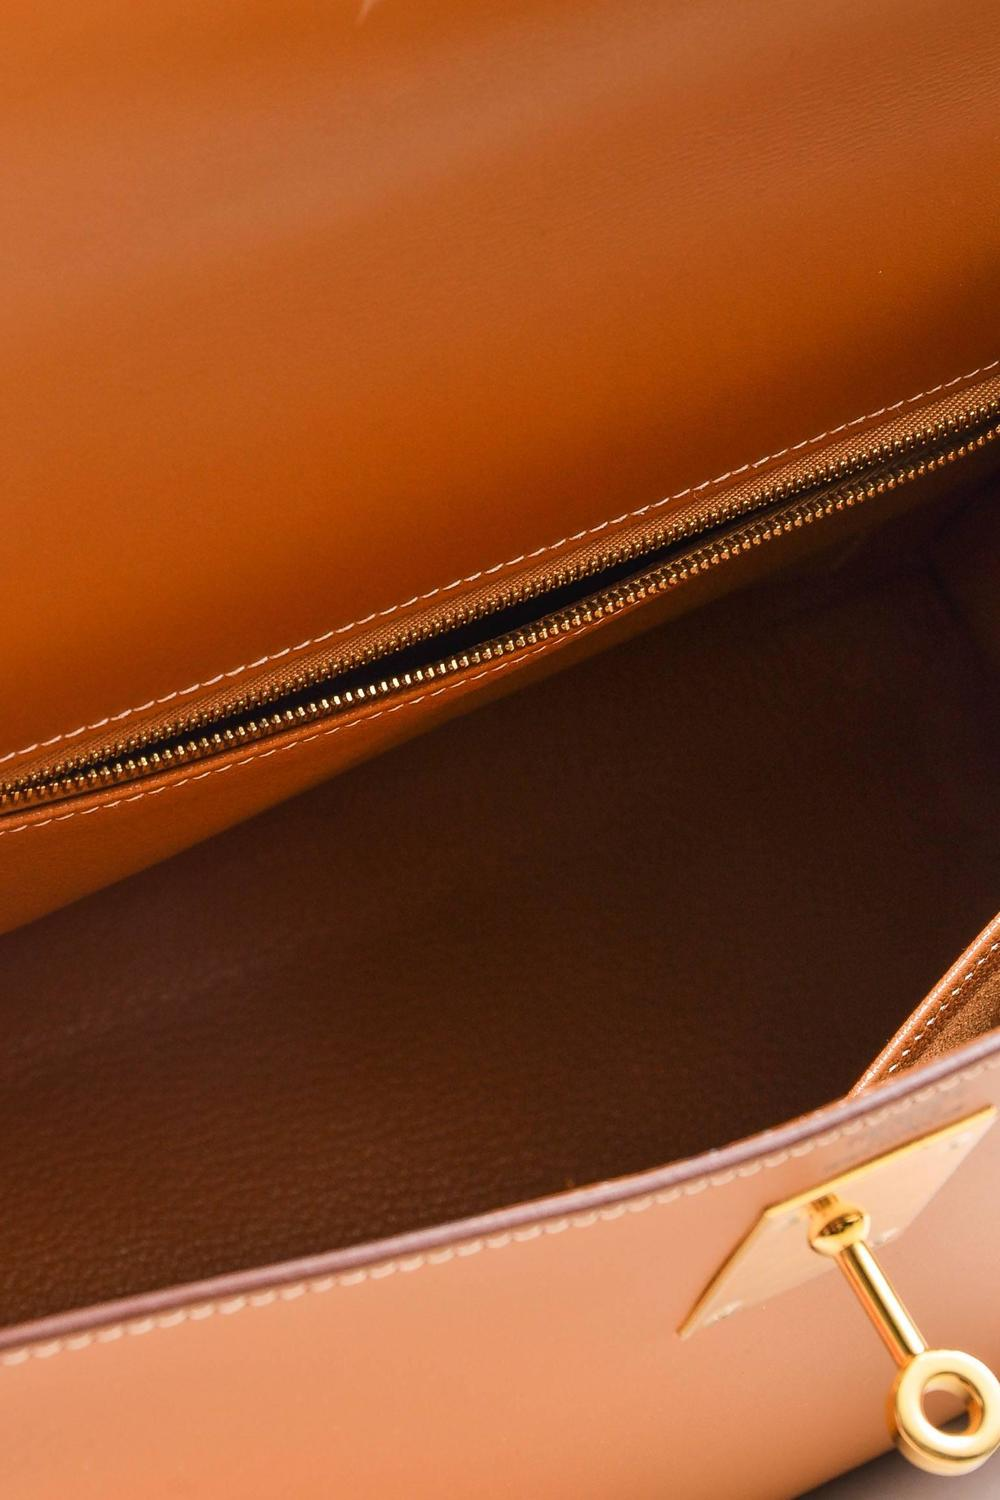 tan leather hermes bag with an h